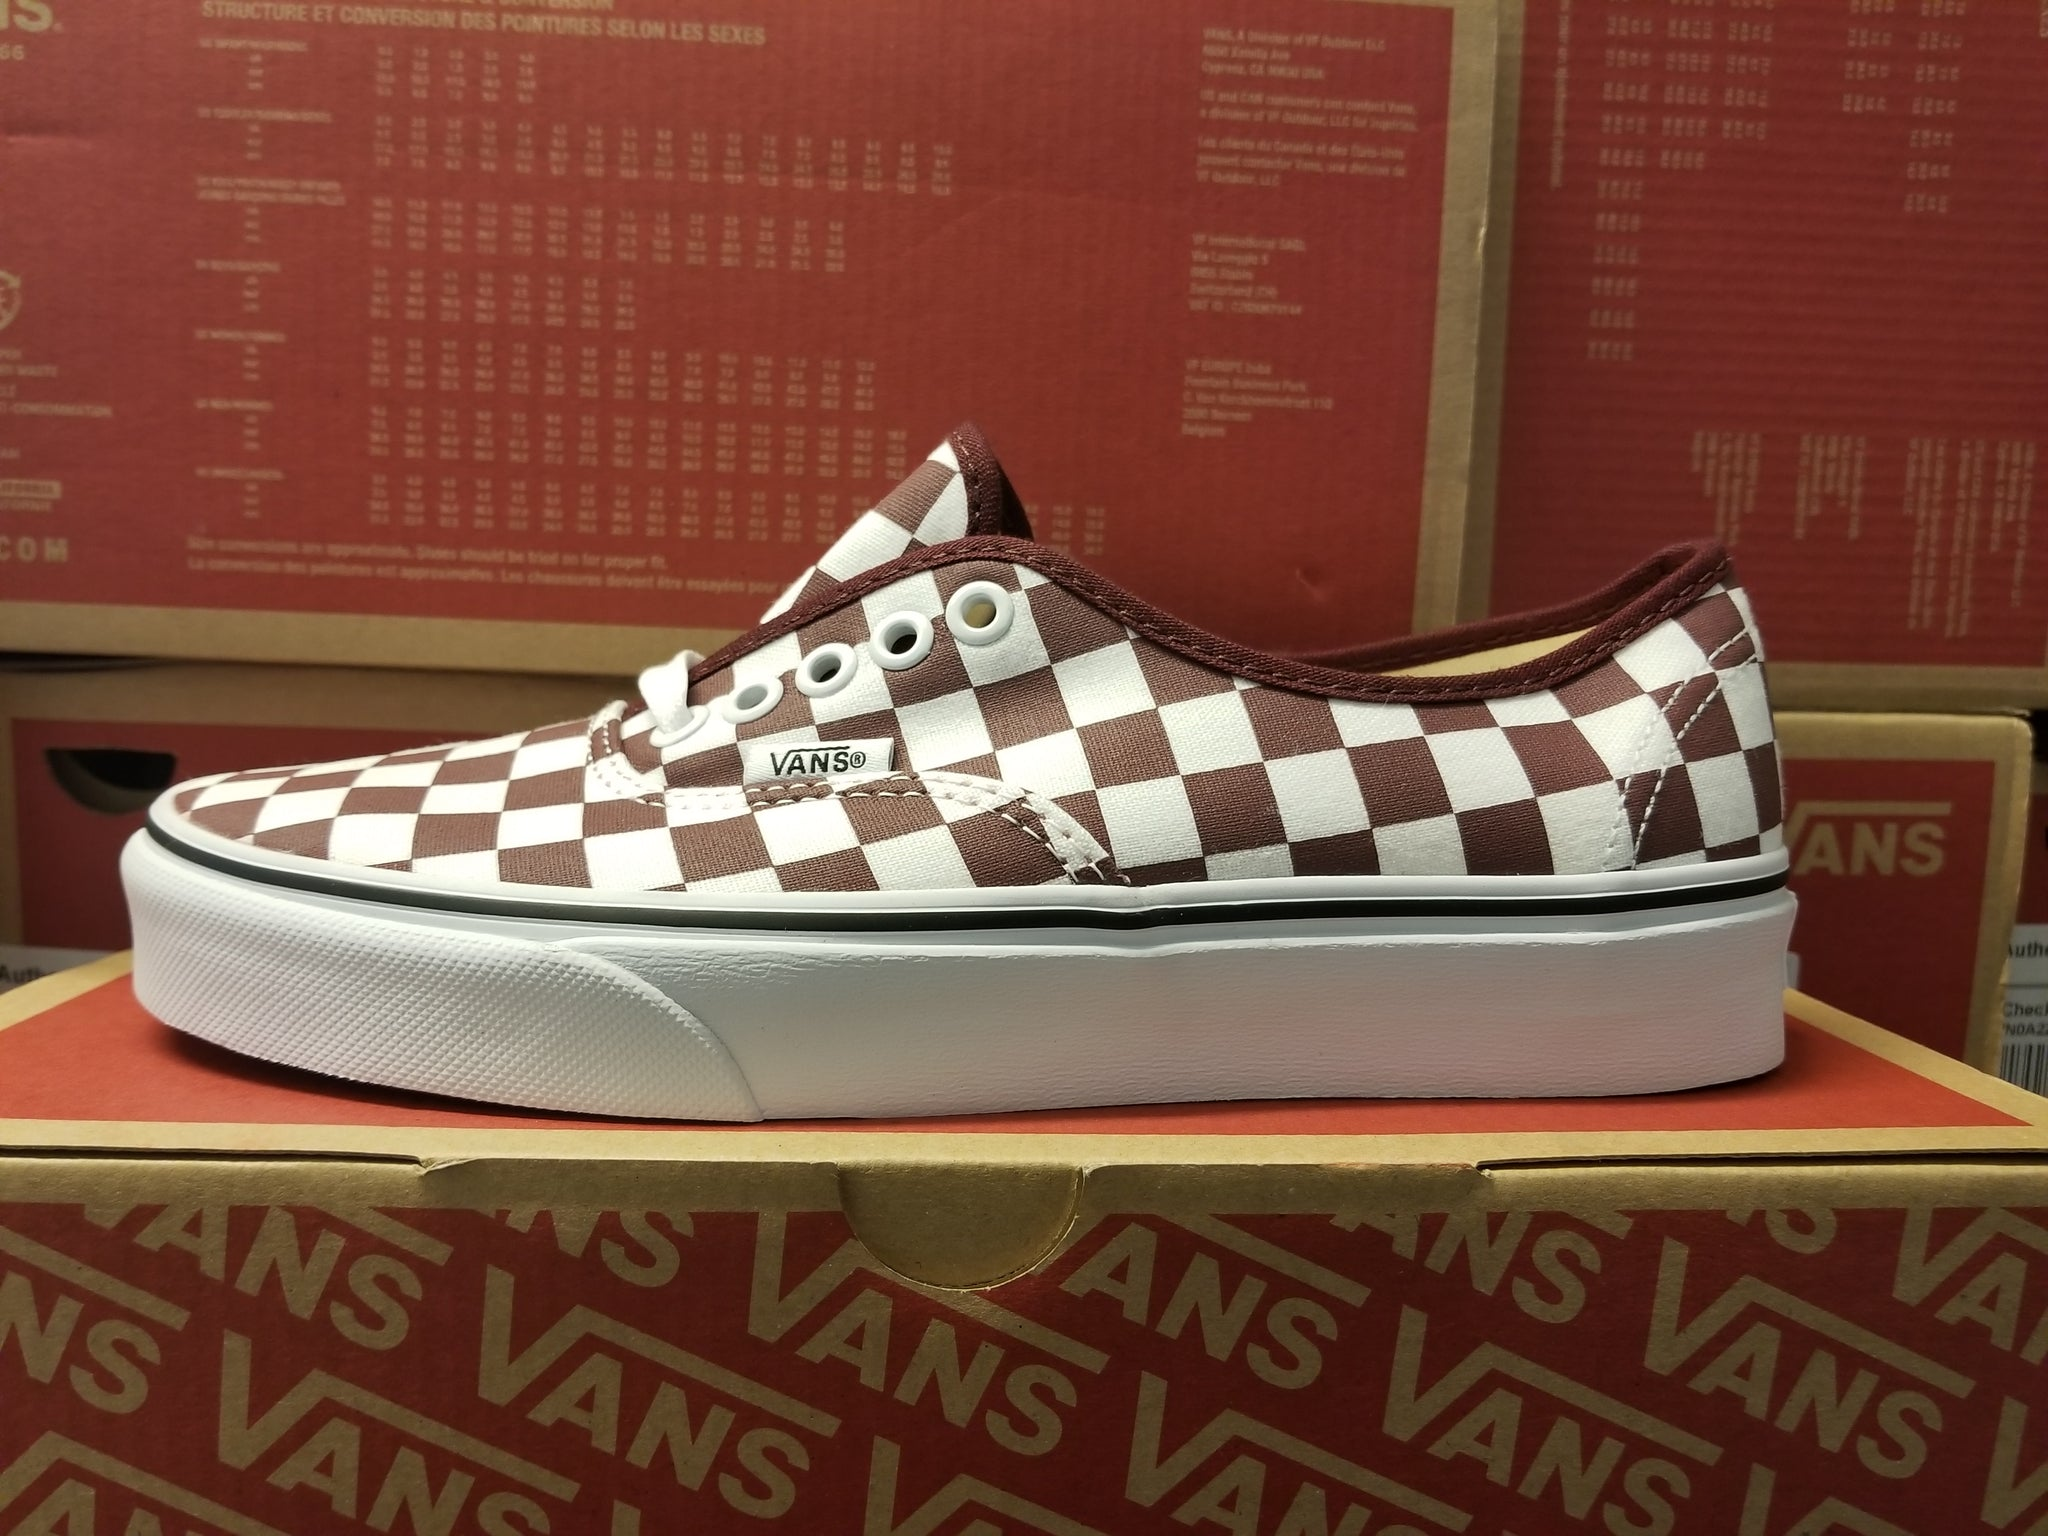 Vans Authentic Checkerboard Port Royale/White Women's Skate Shoes Size 7